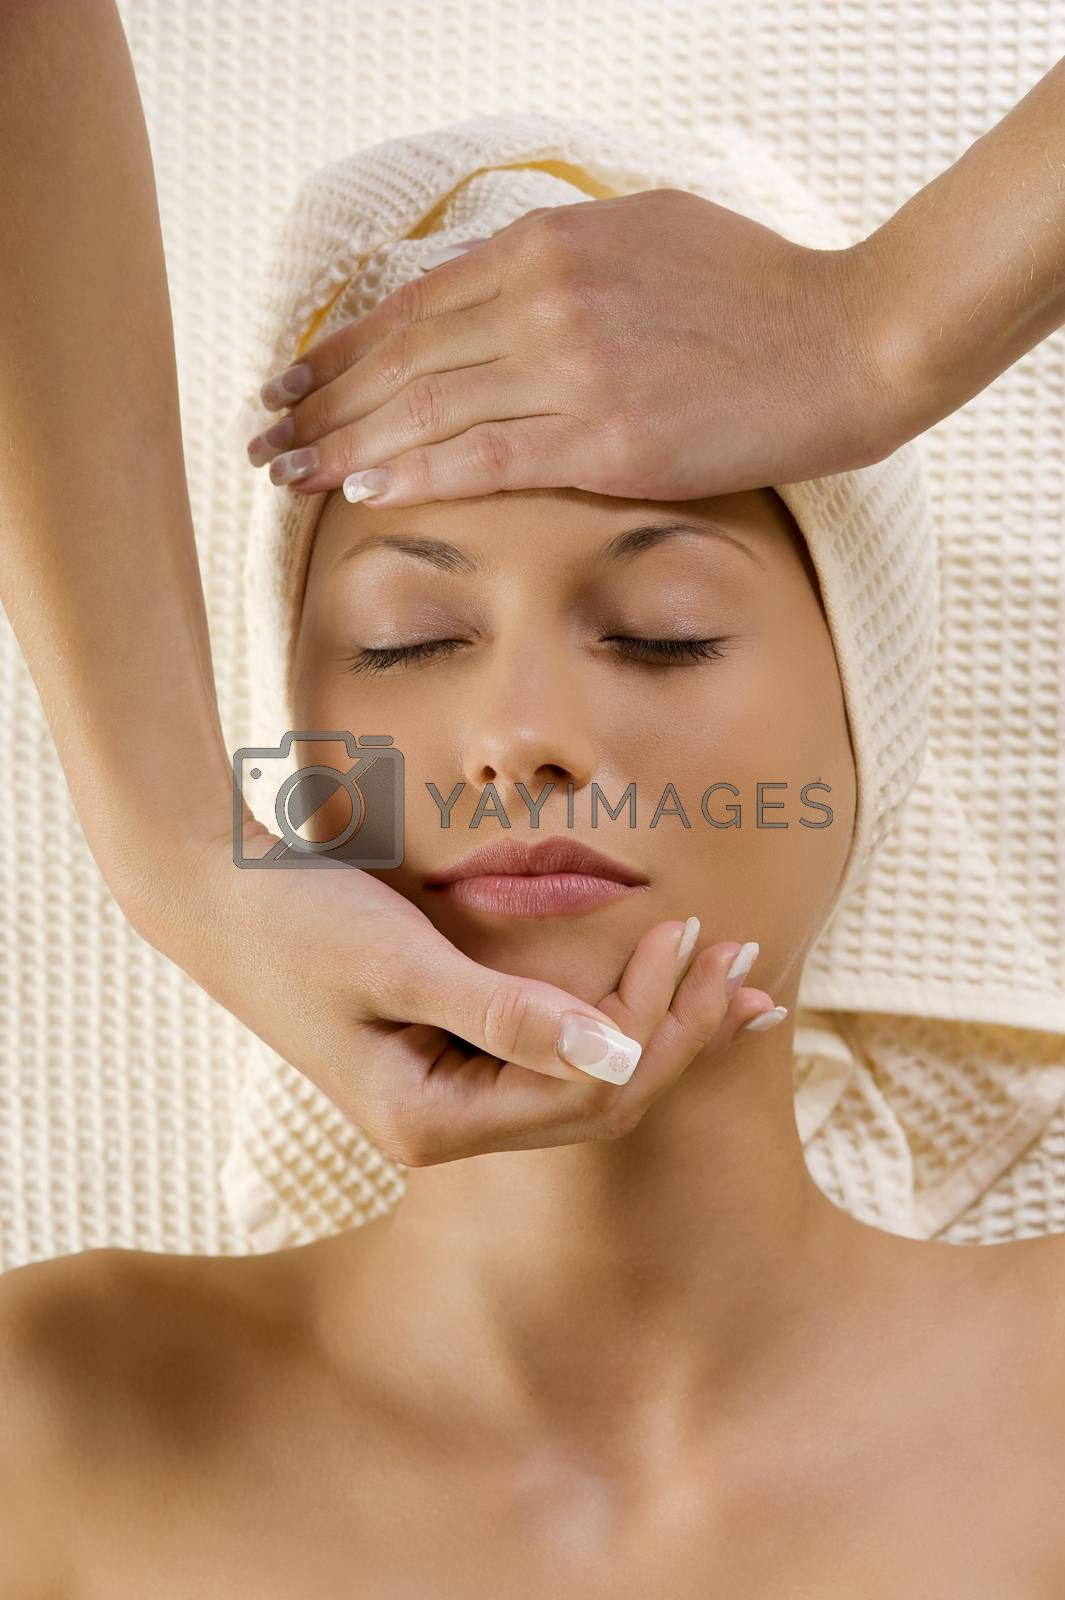 Royalty free image of stretching head with hands by fotoCD